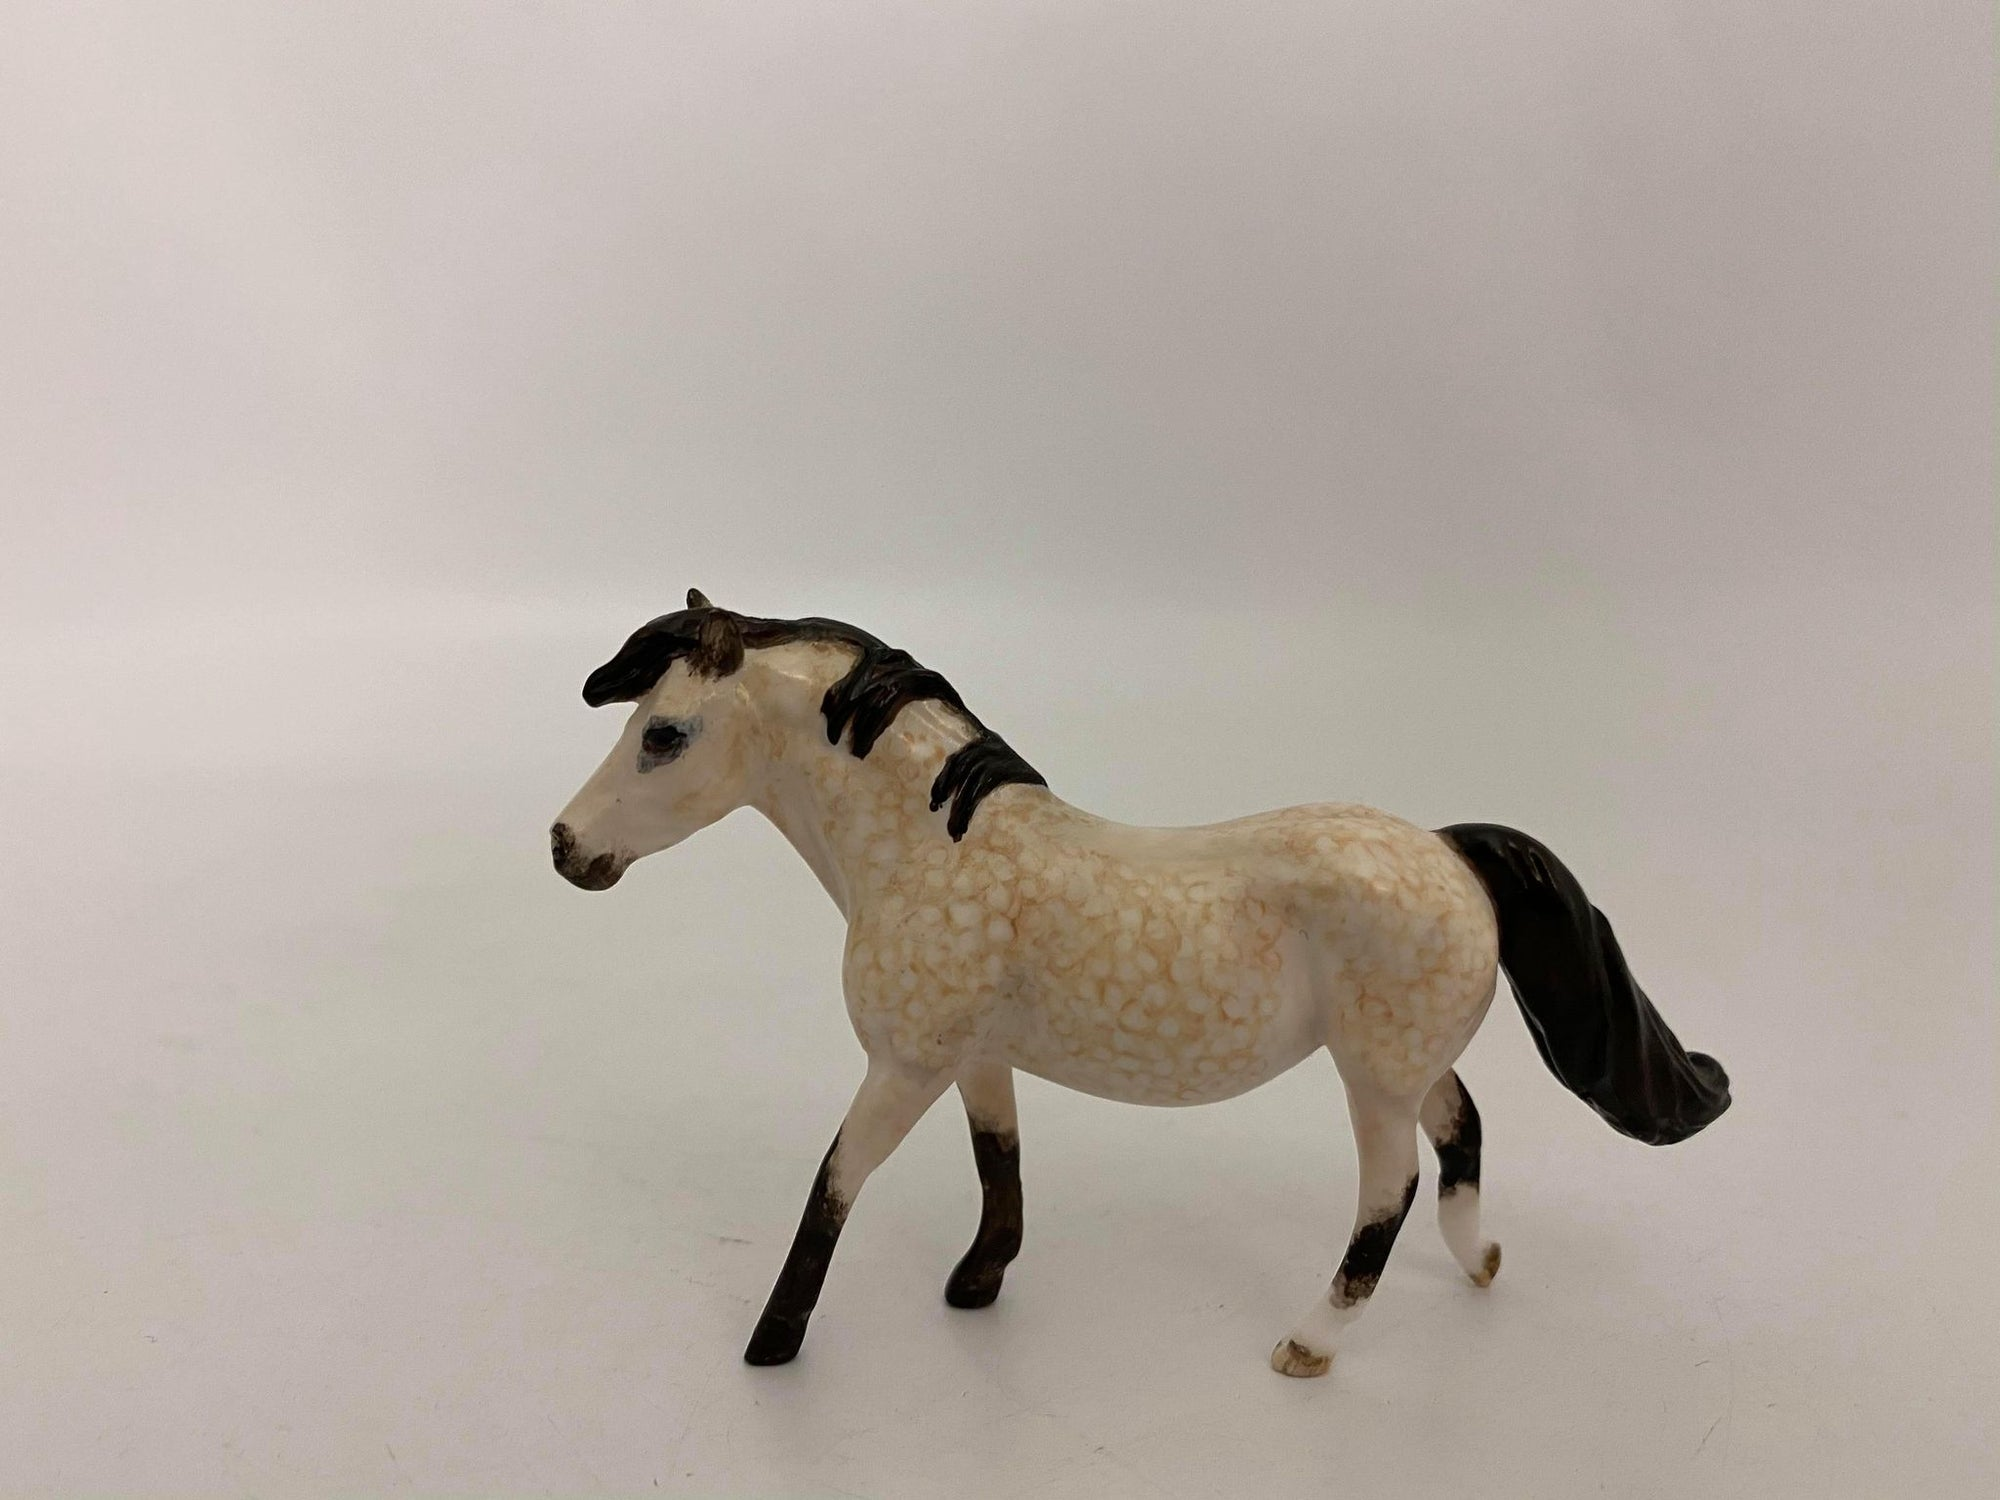 Itsy-OOAK Dapple Buckskin Pony Chip Painted By Andrea Thompson 12/30/20